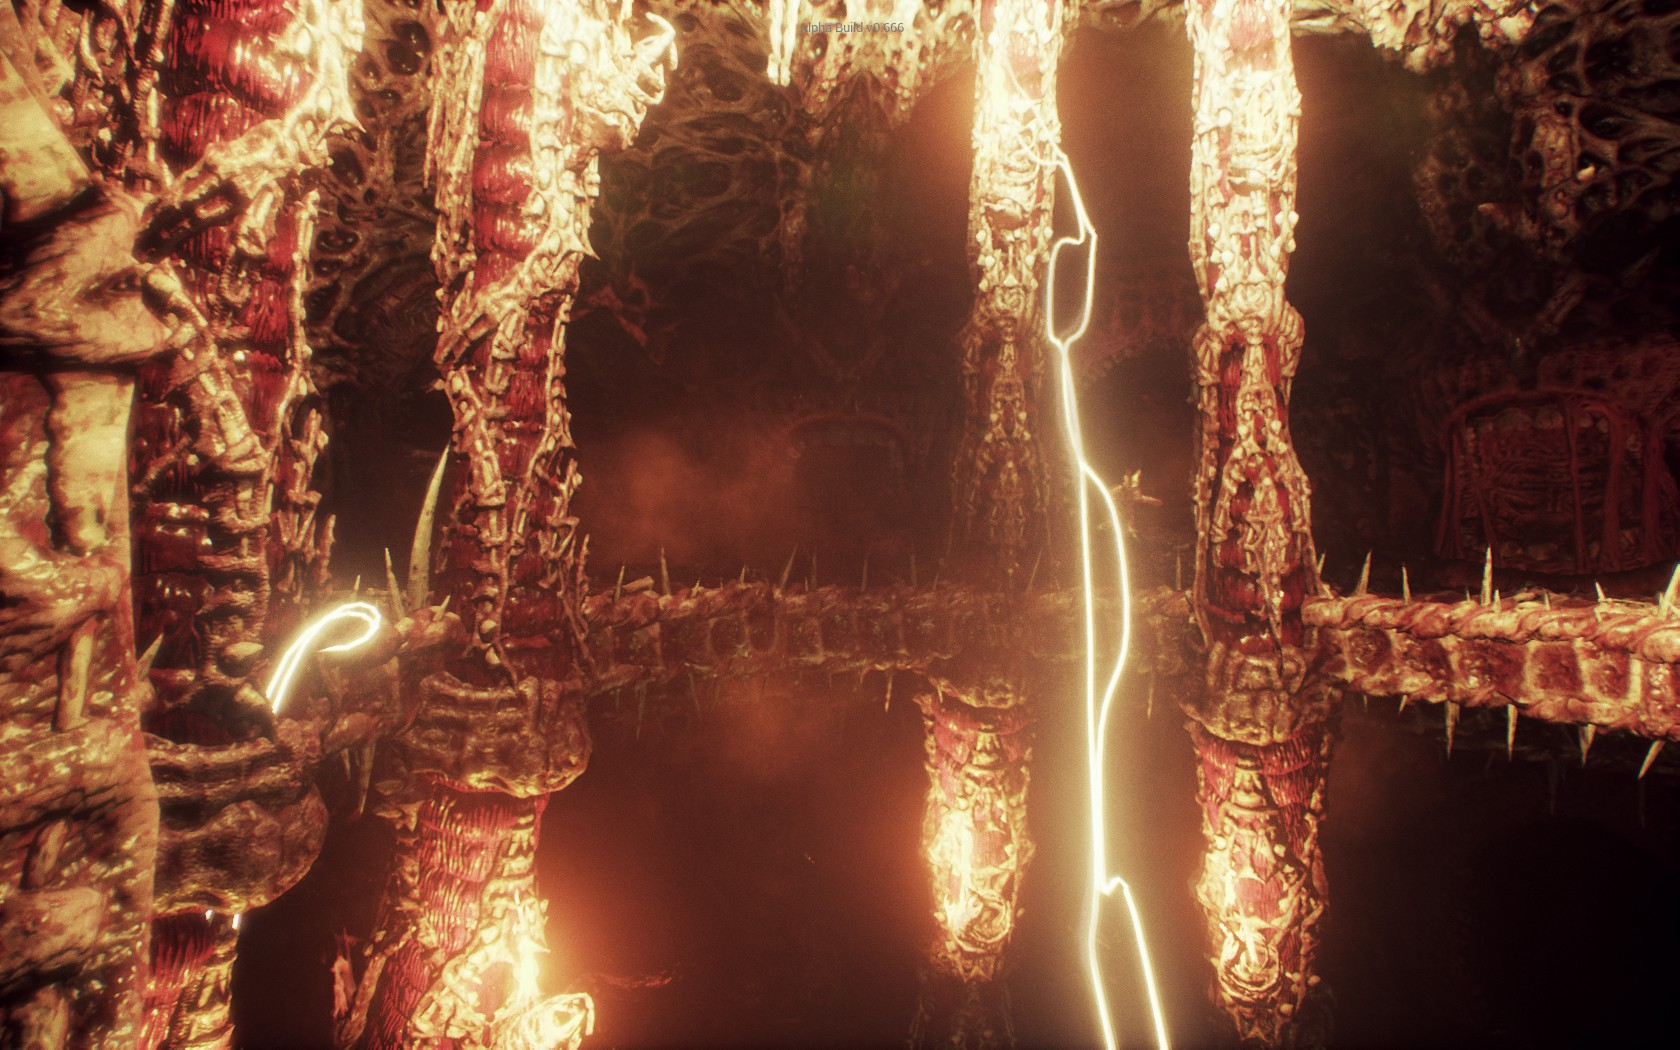 Agony is Shaping Up to Be One Hell of a Game - Cliqist